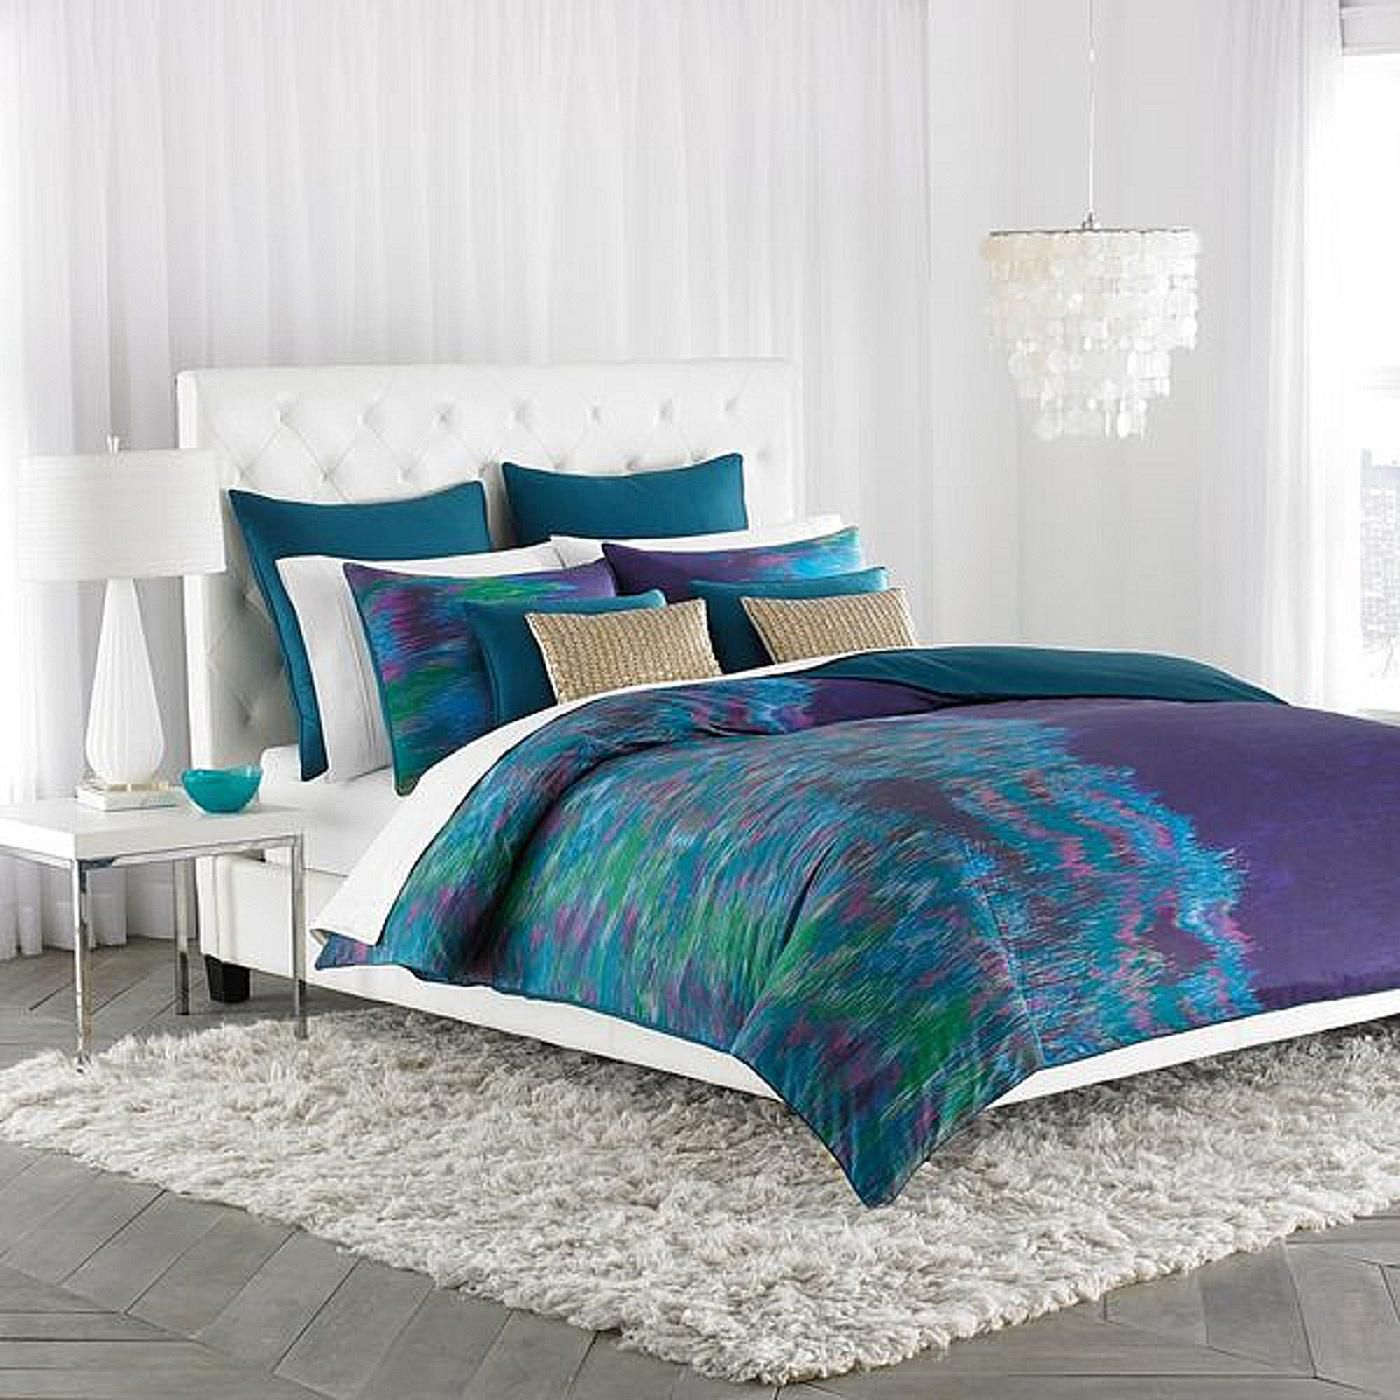 Purple Bedroom Ideas: Decorating Your Bedroom With Green, Blue, And Purple